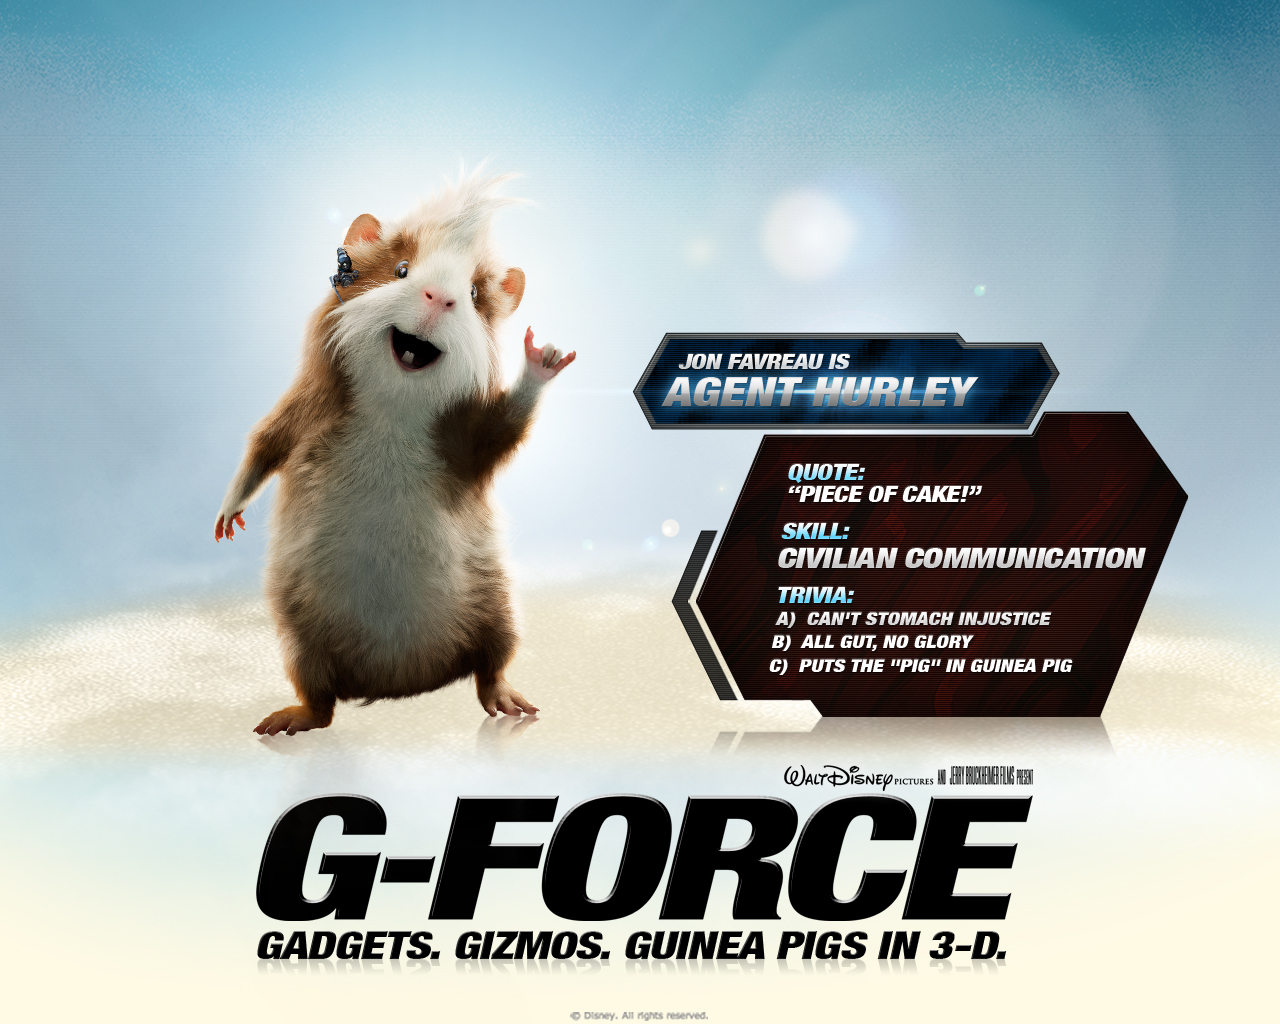 g force-agent-hurley-1280x1024